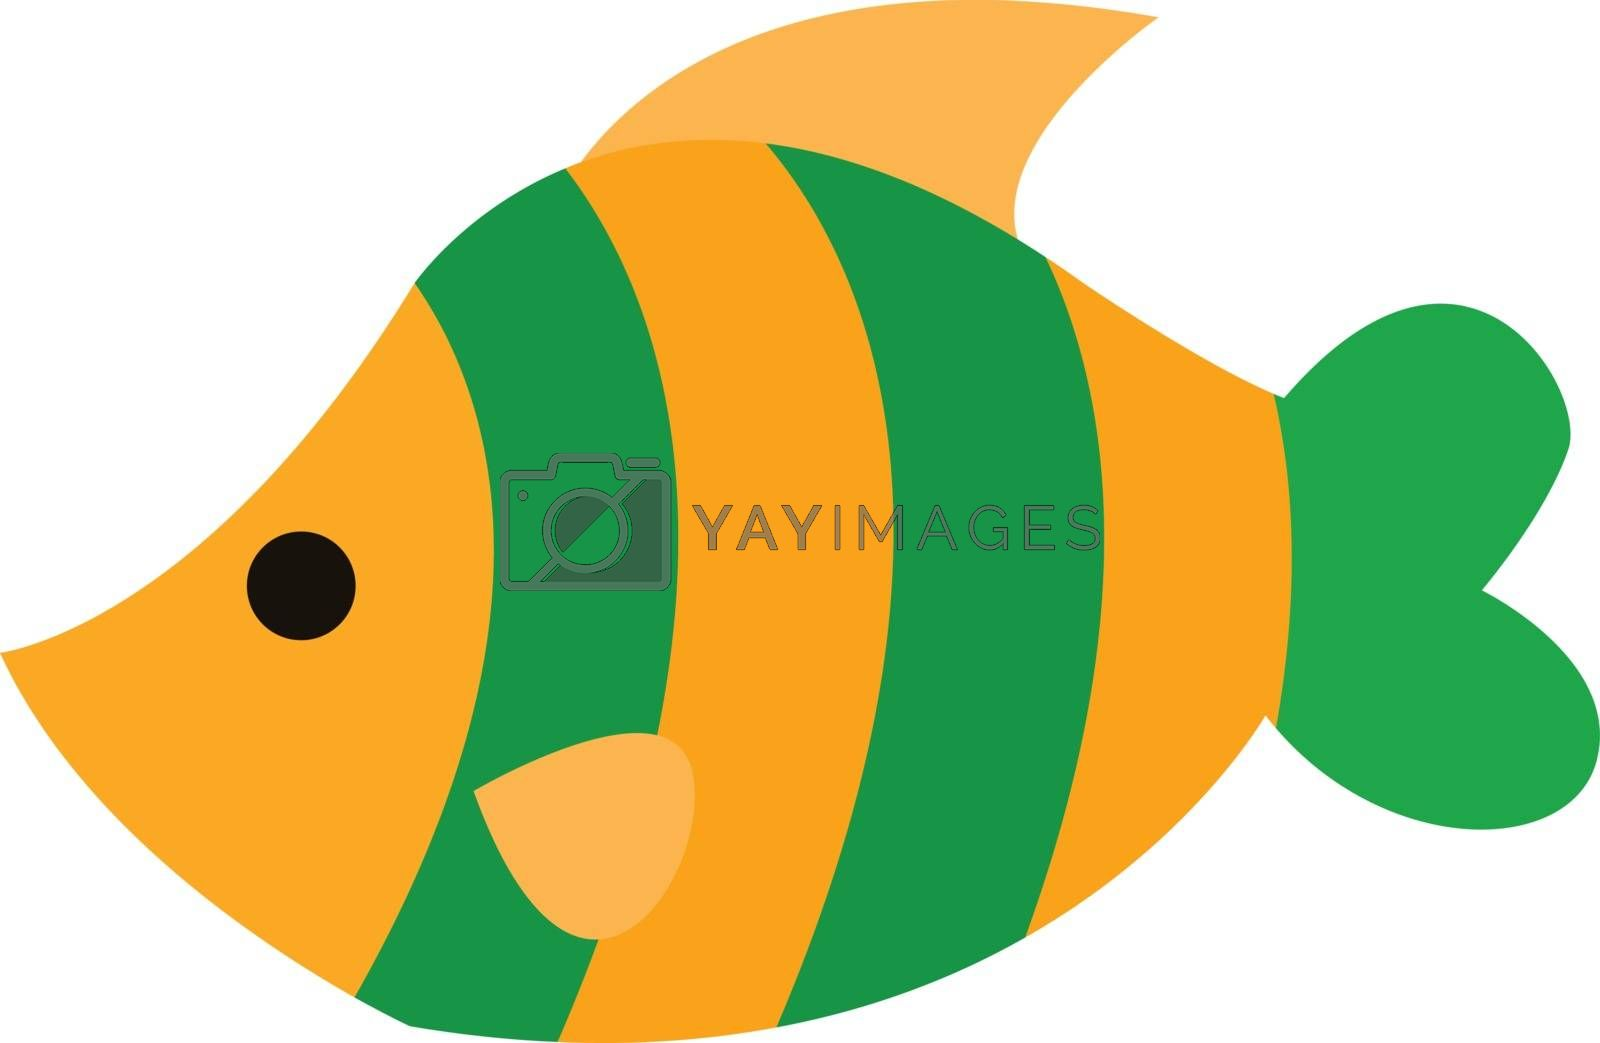 Royalty free image of Clipart of a beautiful yellow fish with two green bands as scale by Morphart